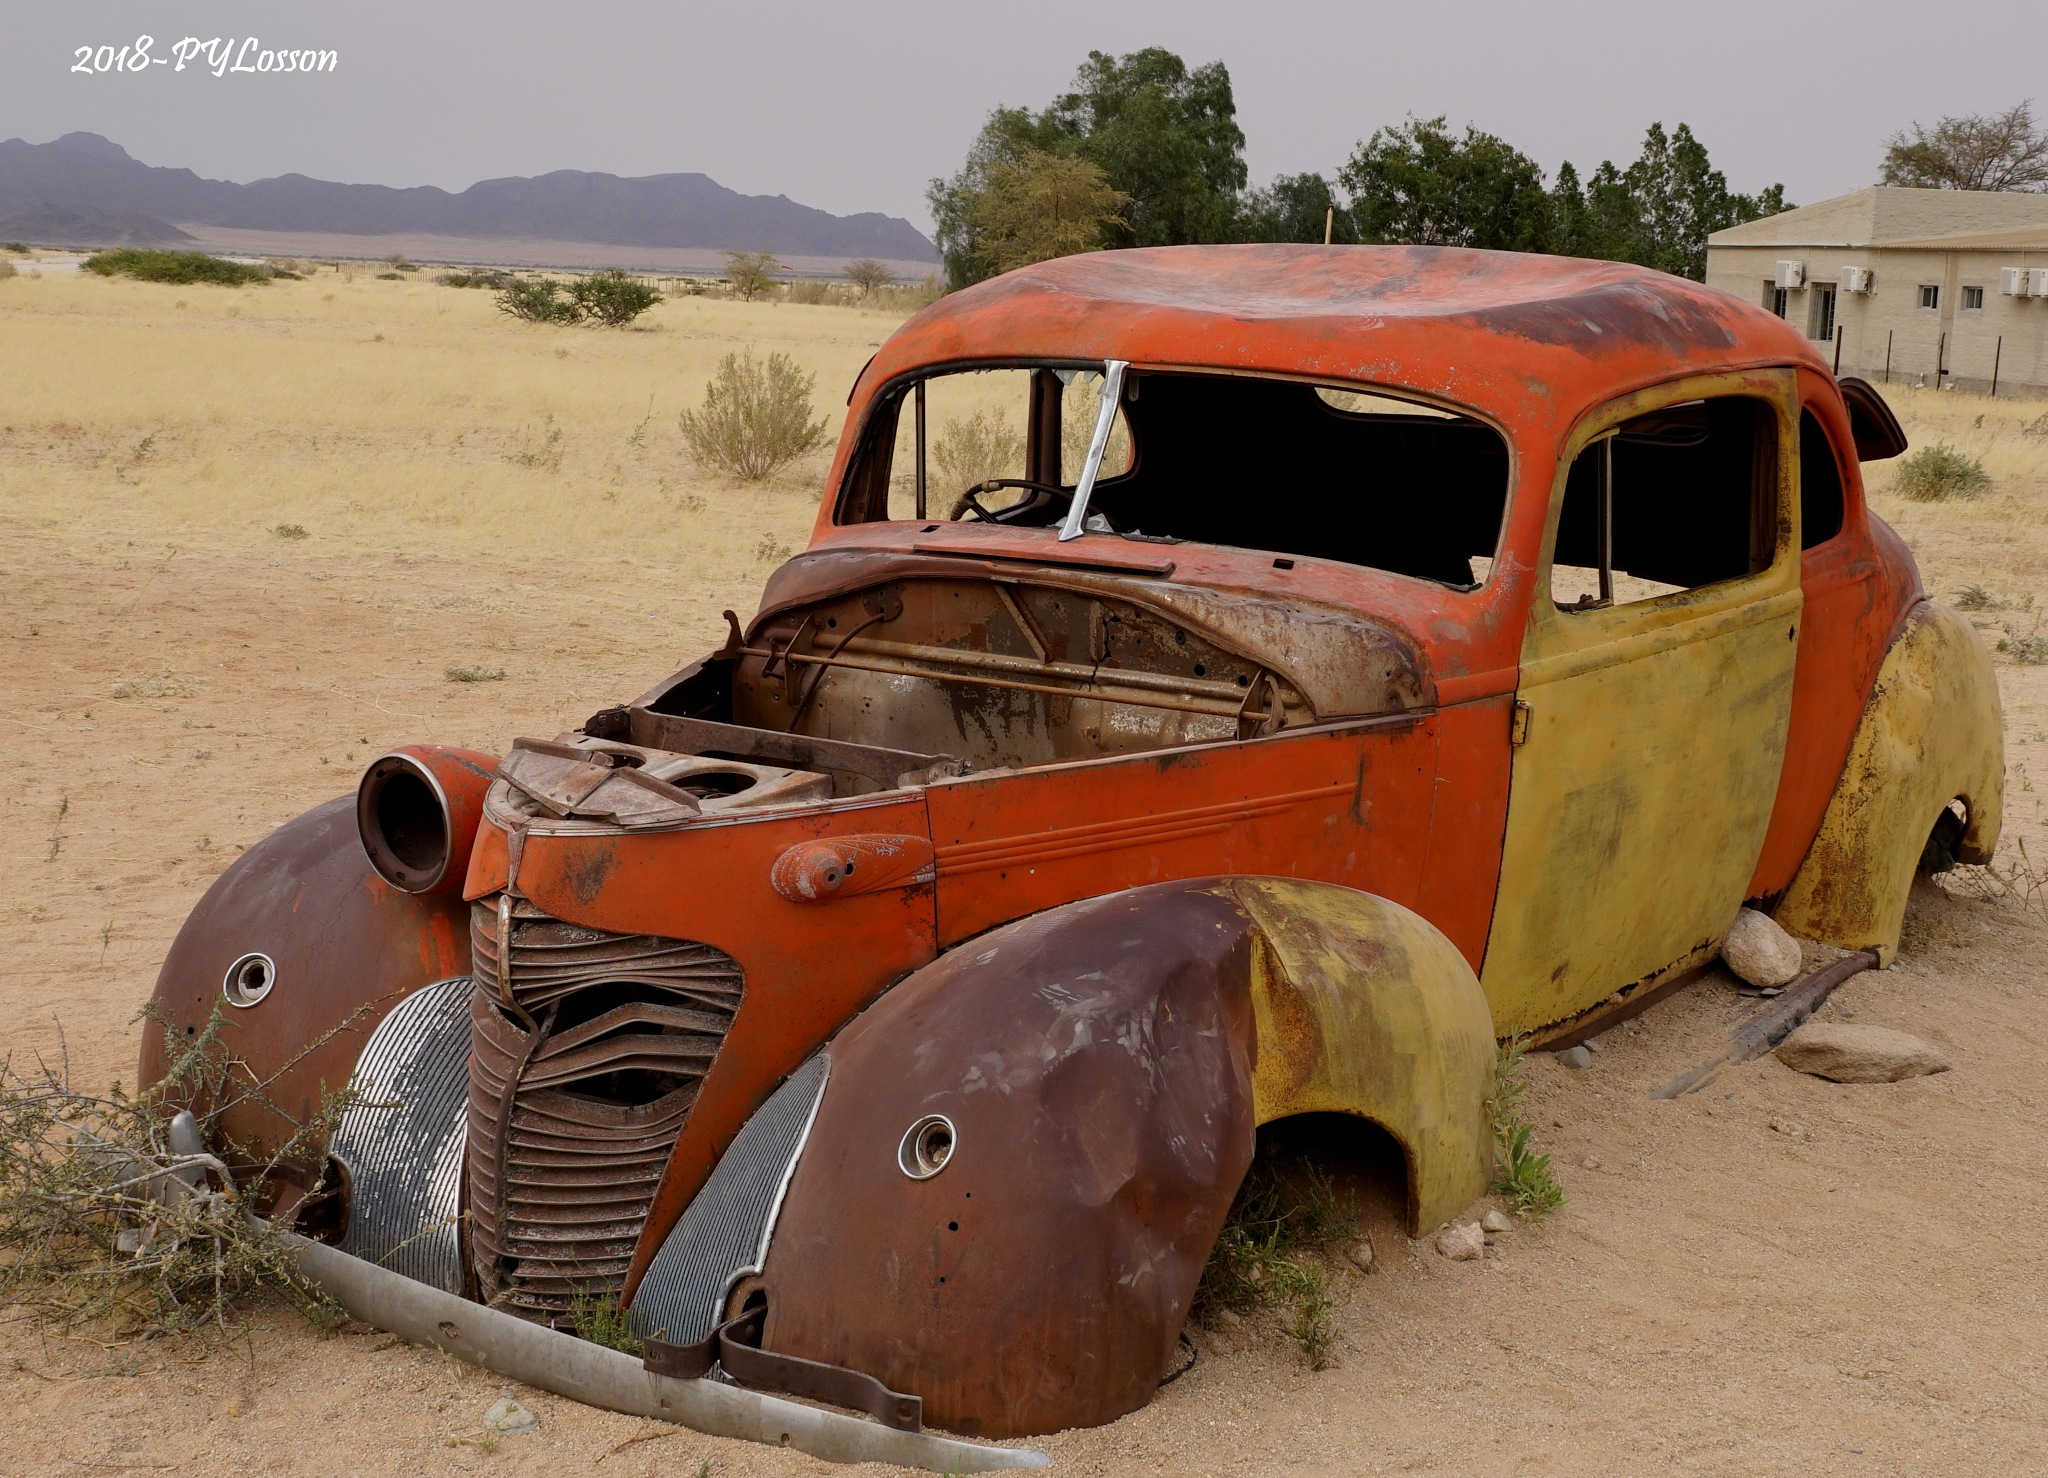 Old Car by Pierre-Yves Losson